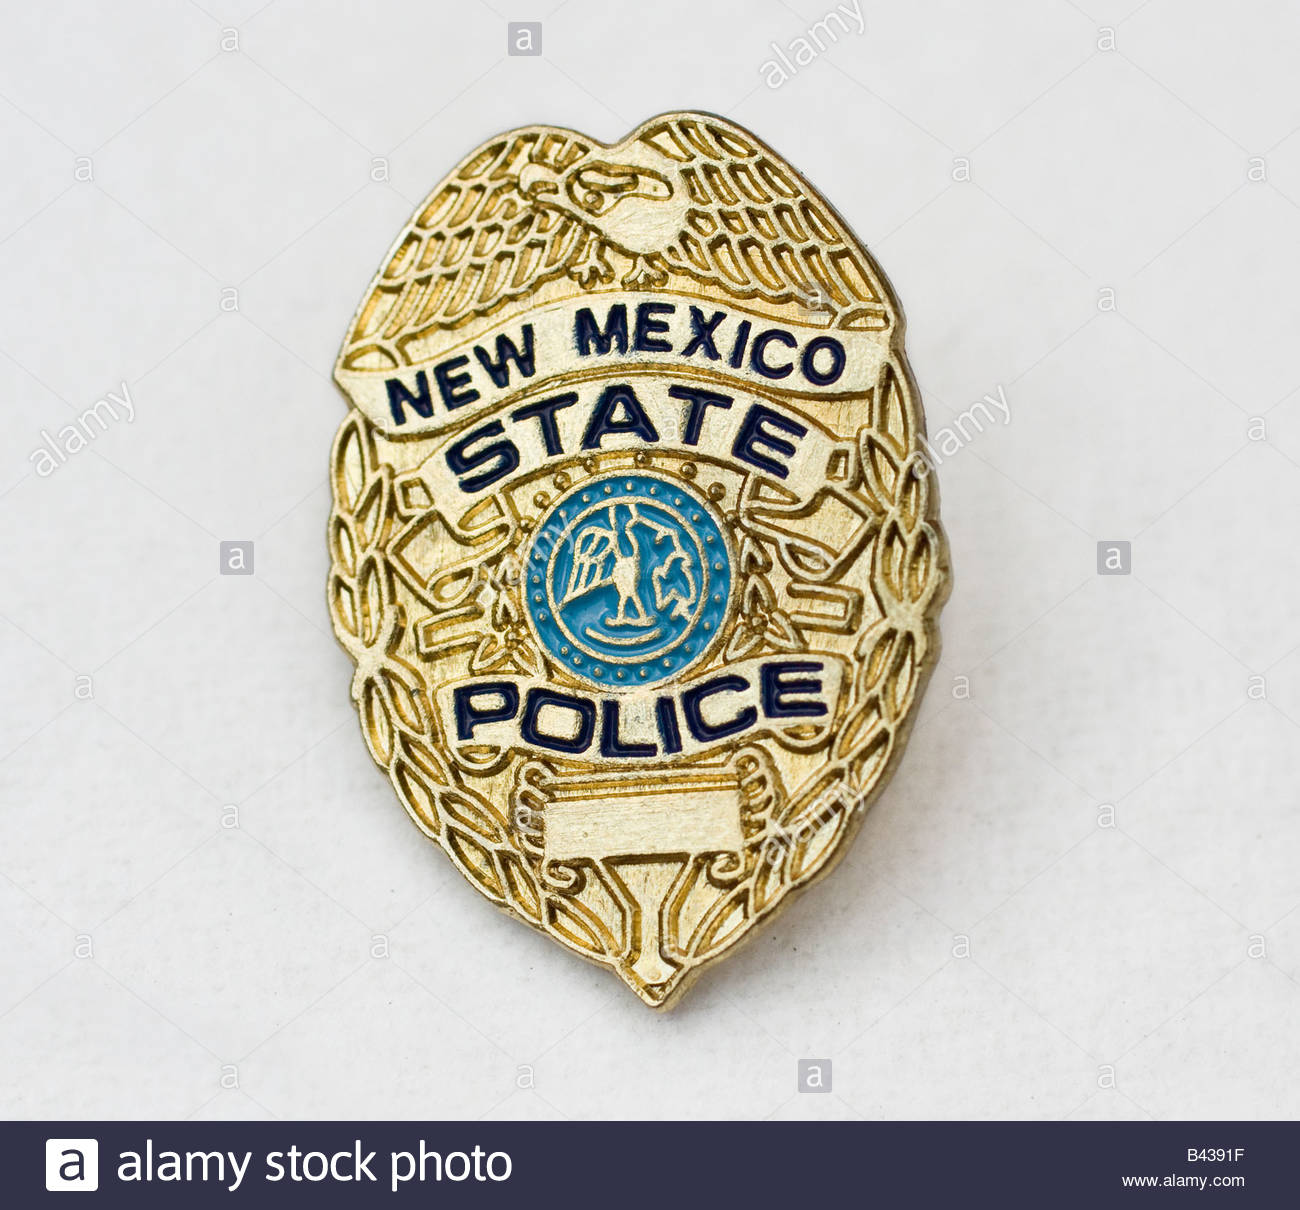 new mexico state police badge stock photo royalty free image